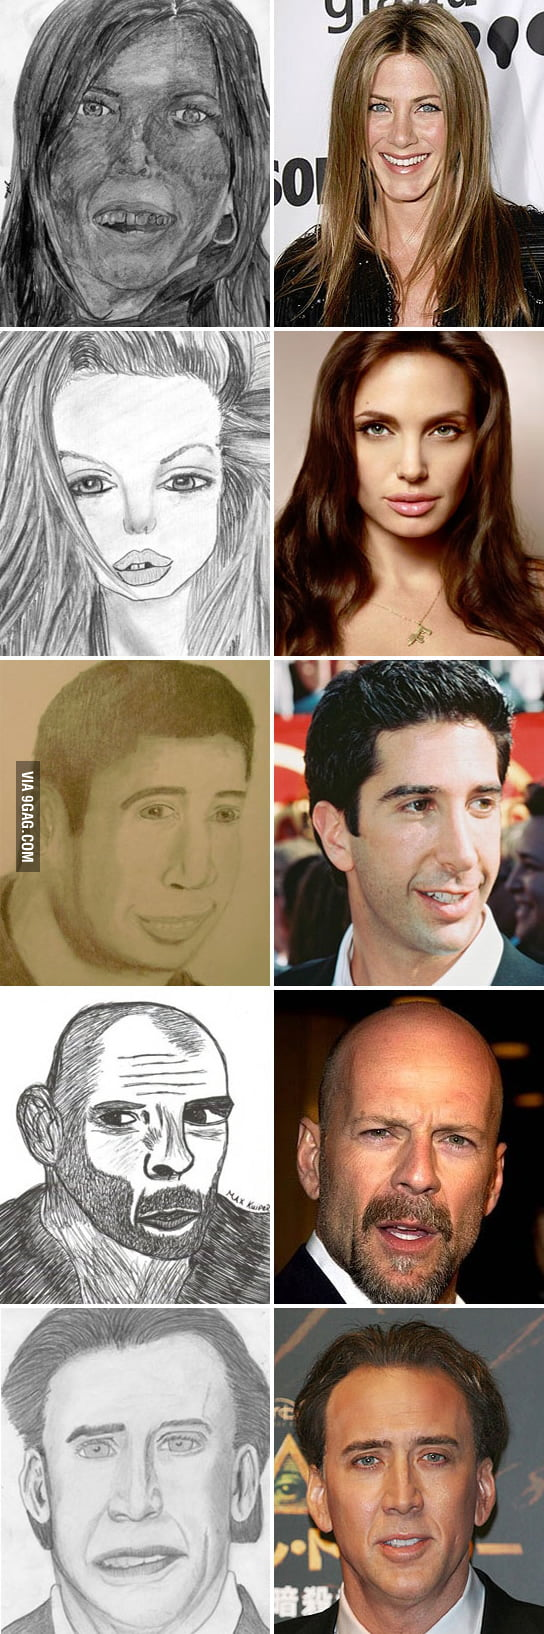 Awful Celebrity Fan Art